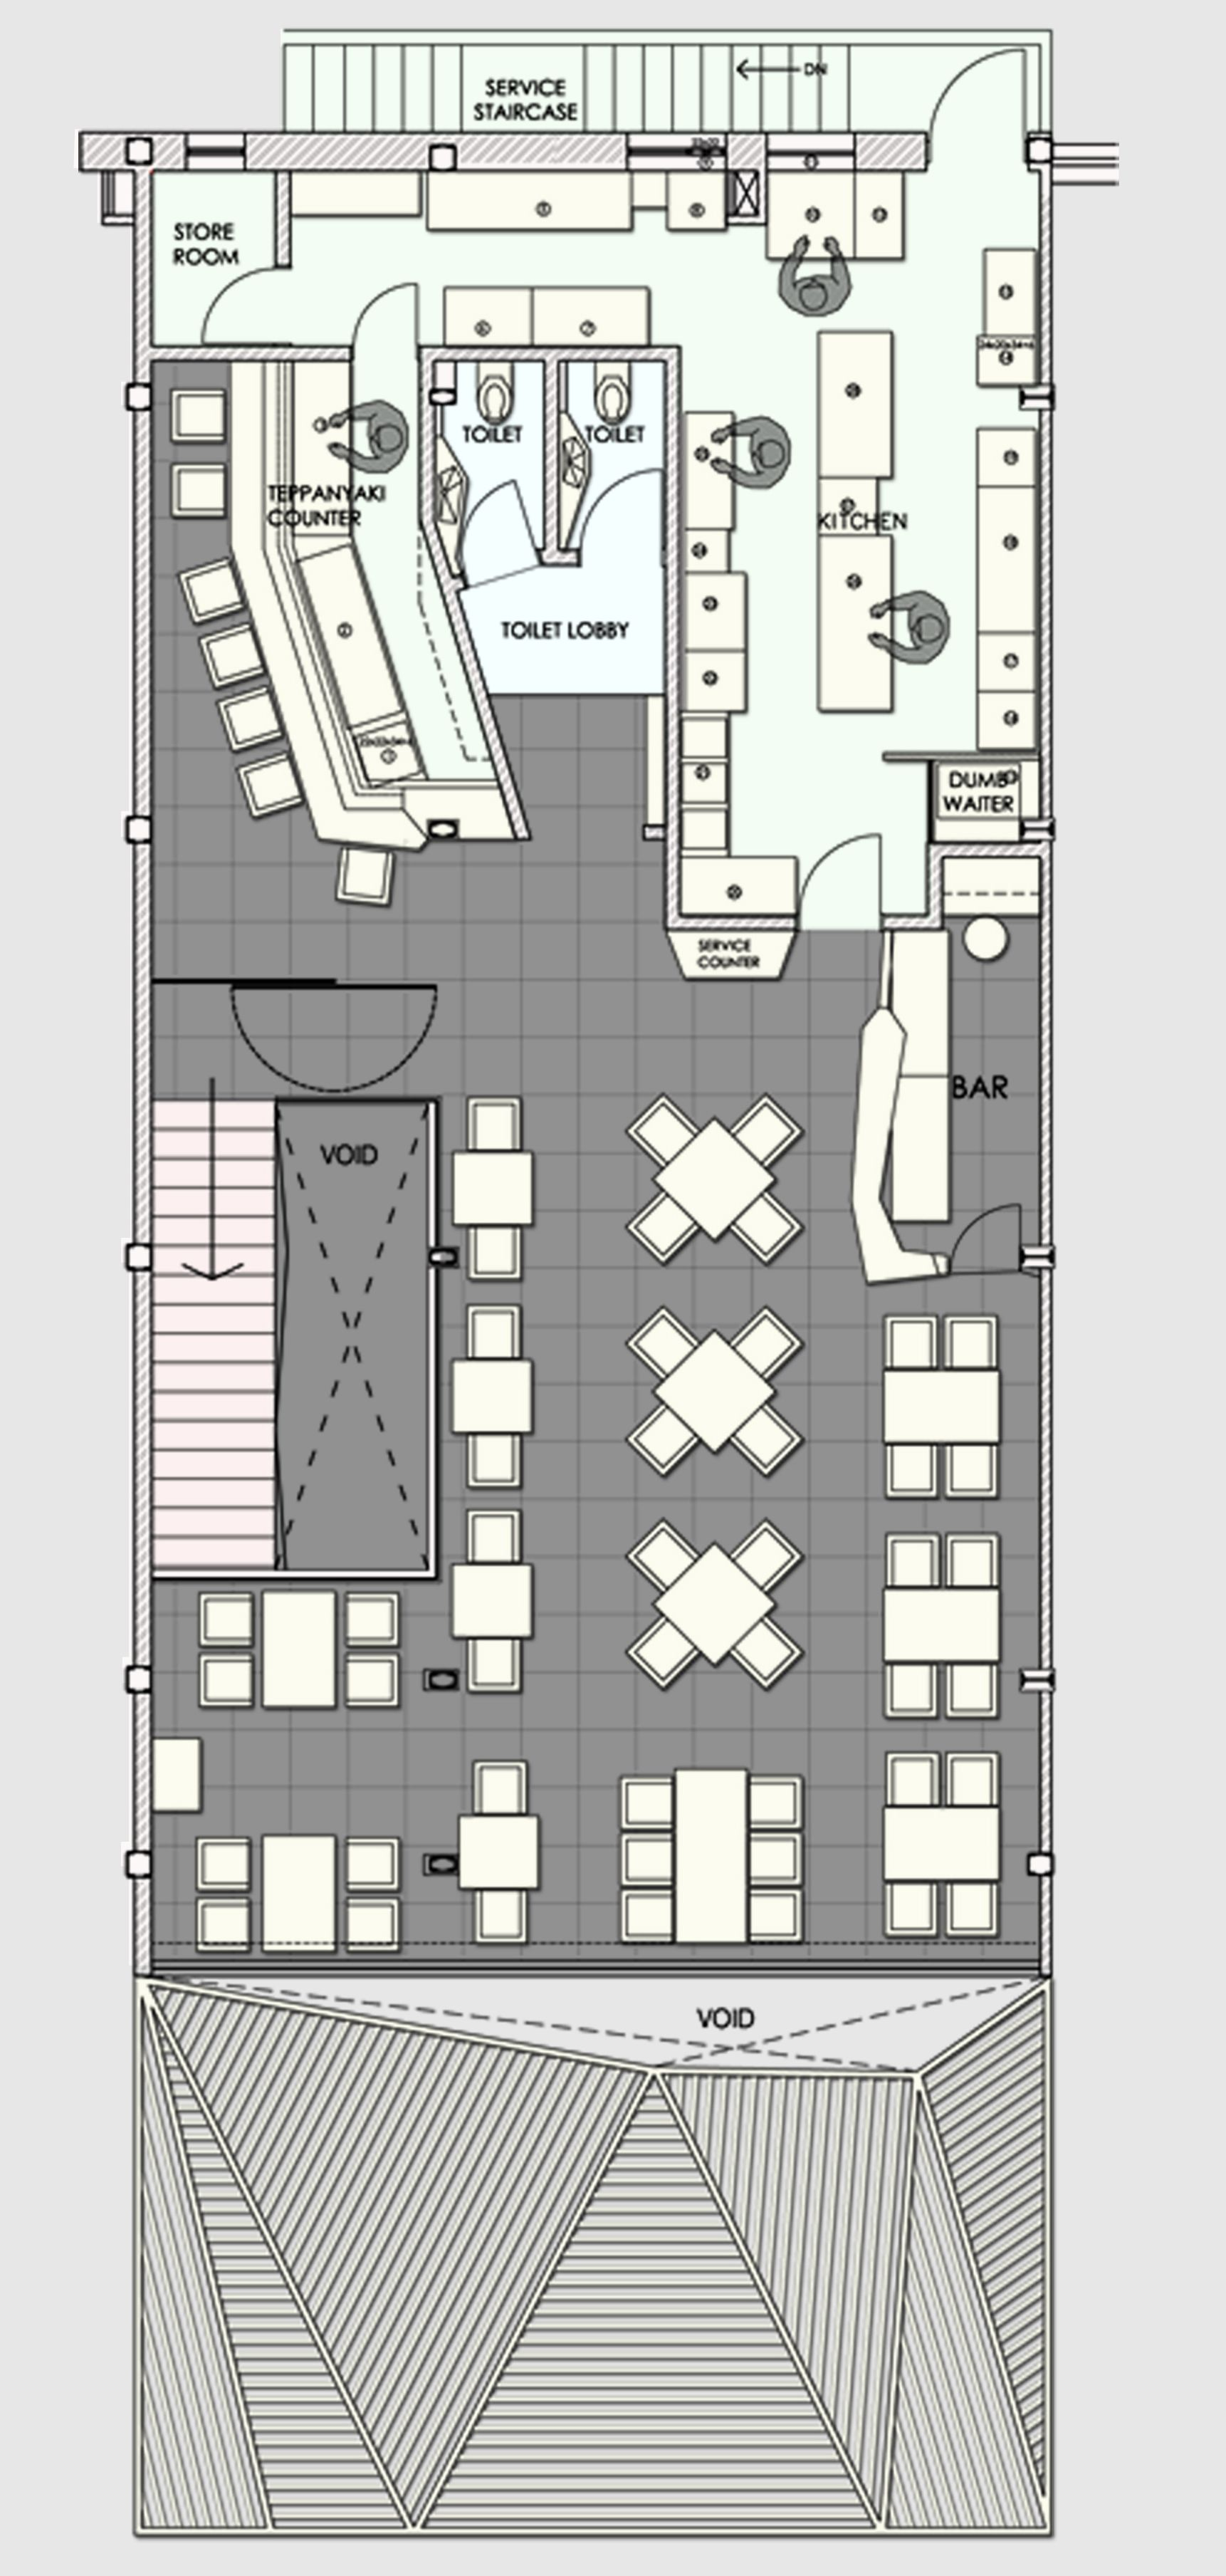 Restaurant Kitchen Layout Autocad galería de restaurant auriga / sanjay puri - 13 | restaurants